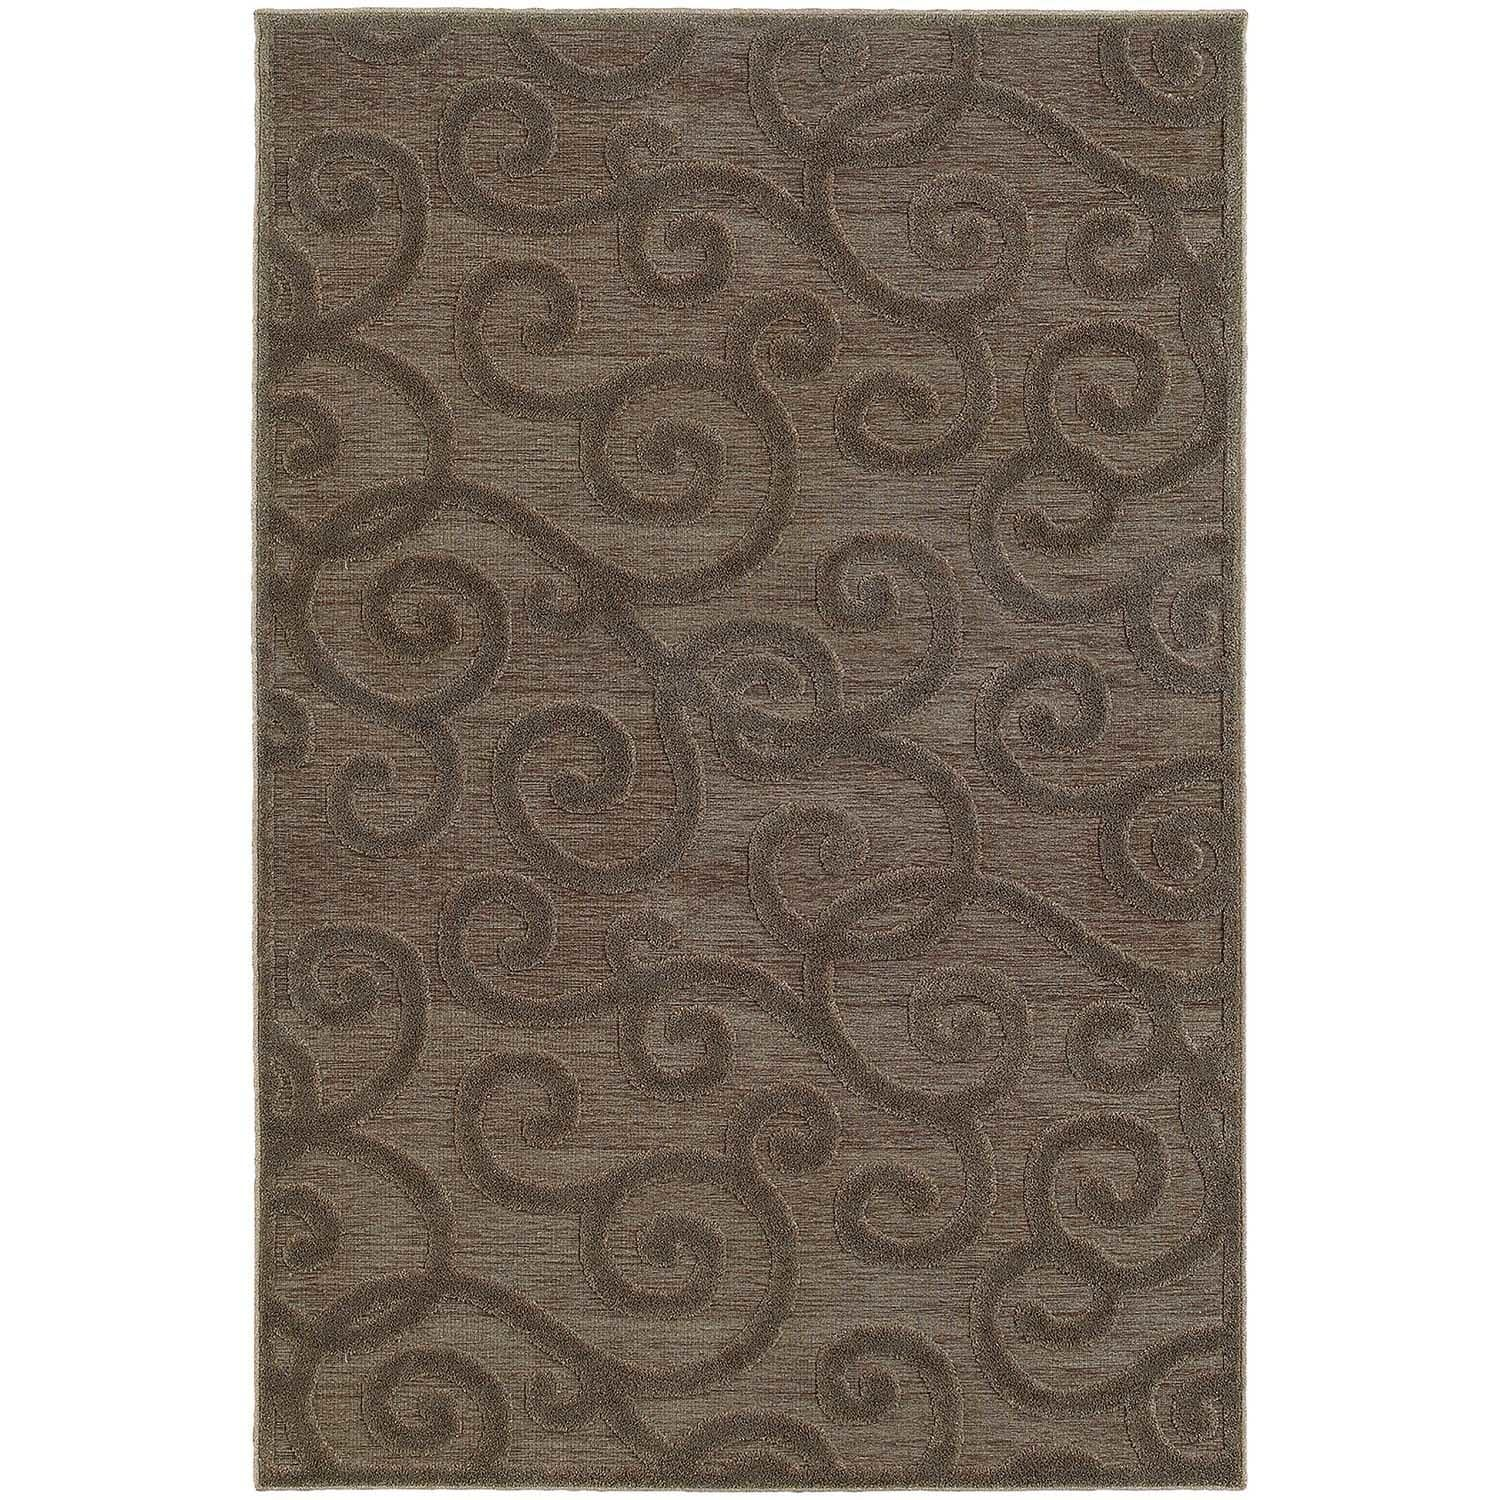 Lush Scrolls Brown/ Grey Rug - 4' x 6'